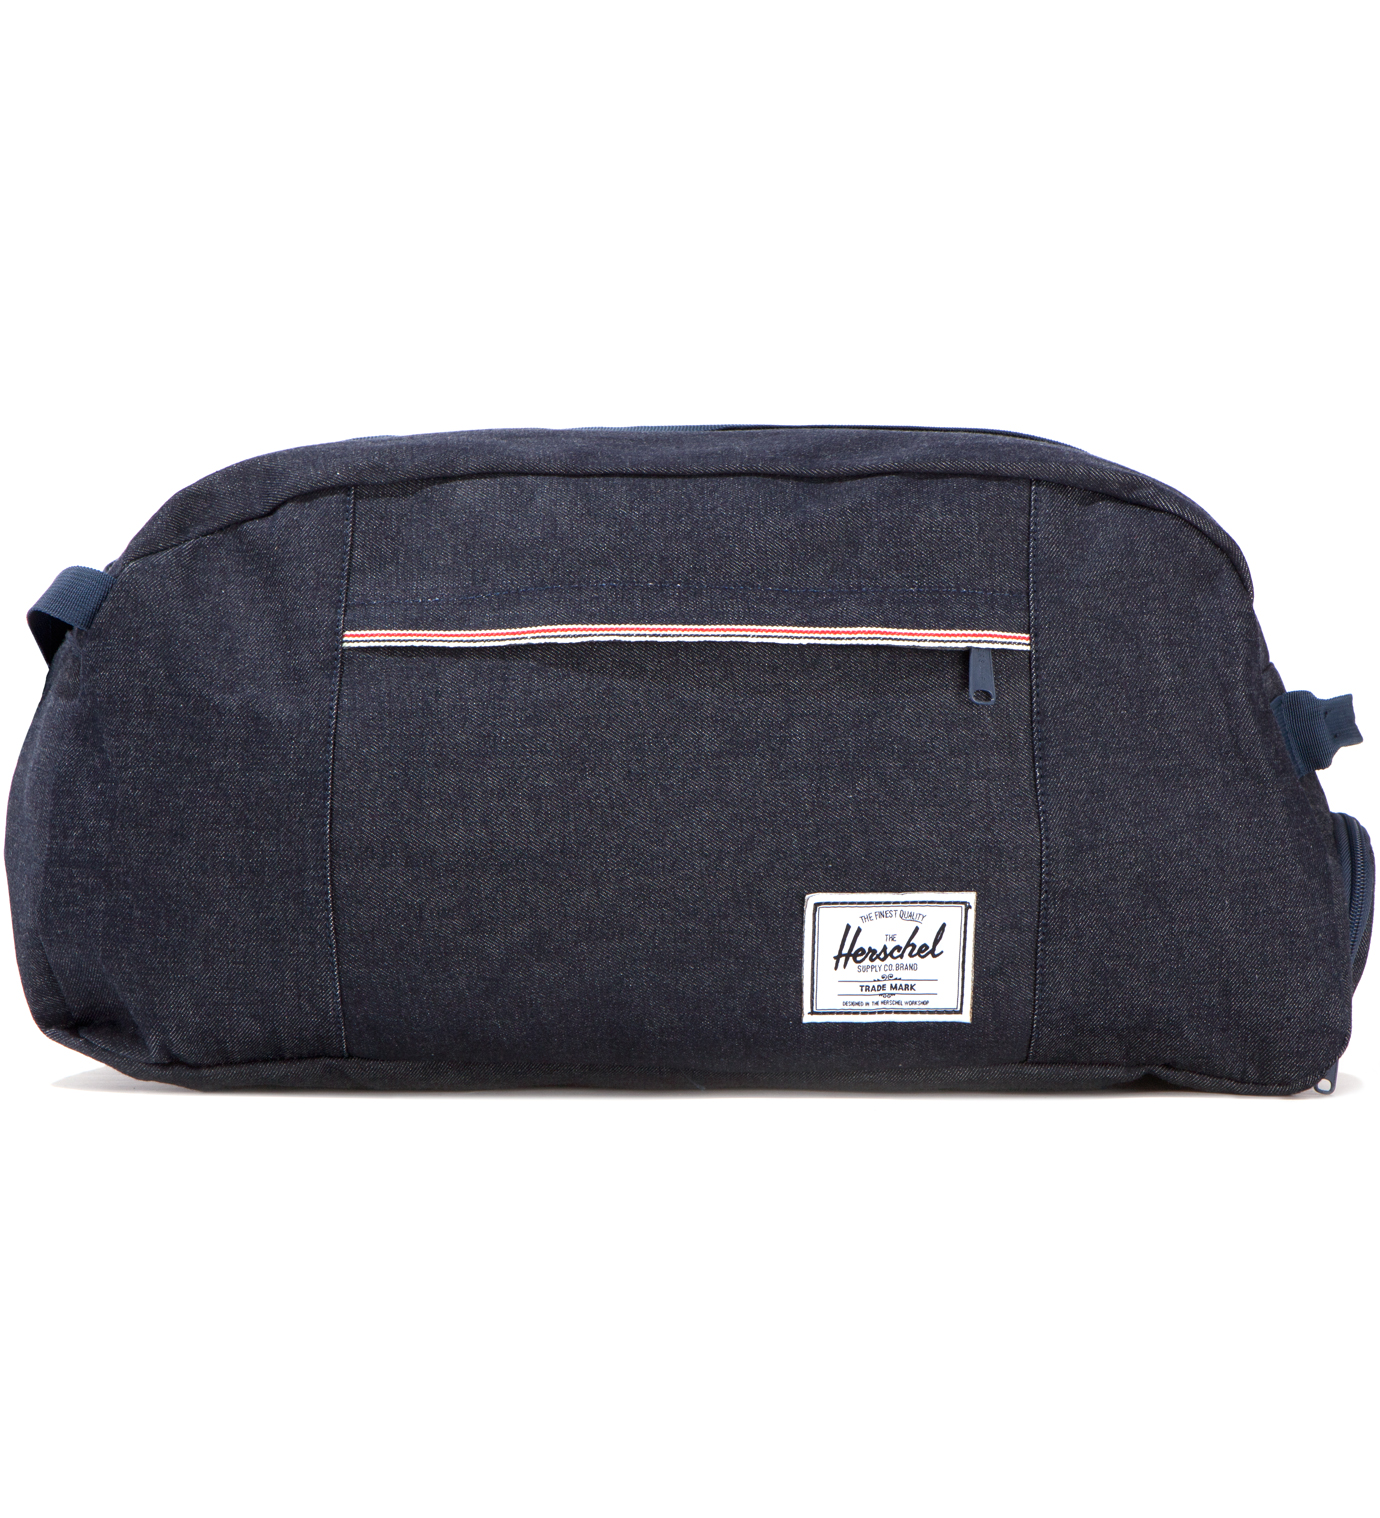 Herschel Supply Co. Bad Hills Journey Selvage Denim Bag